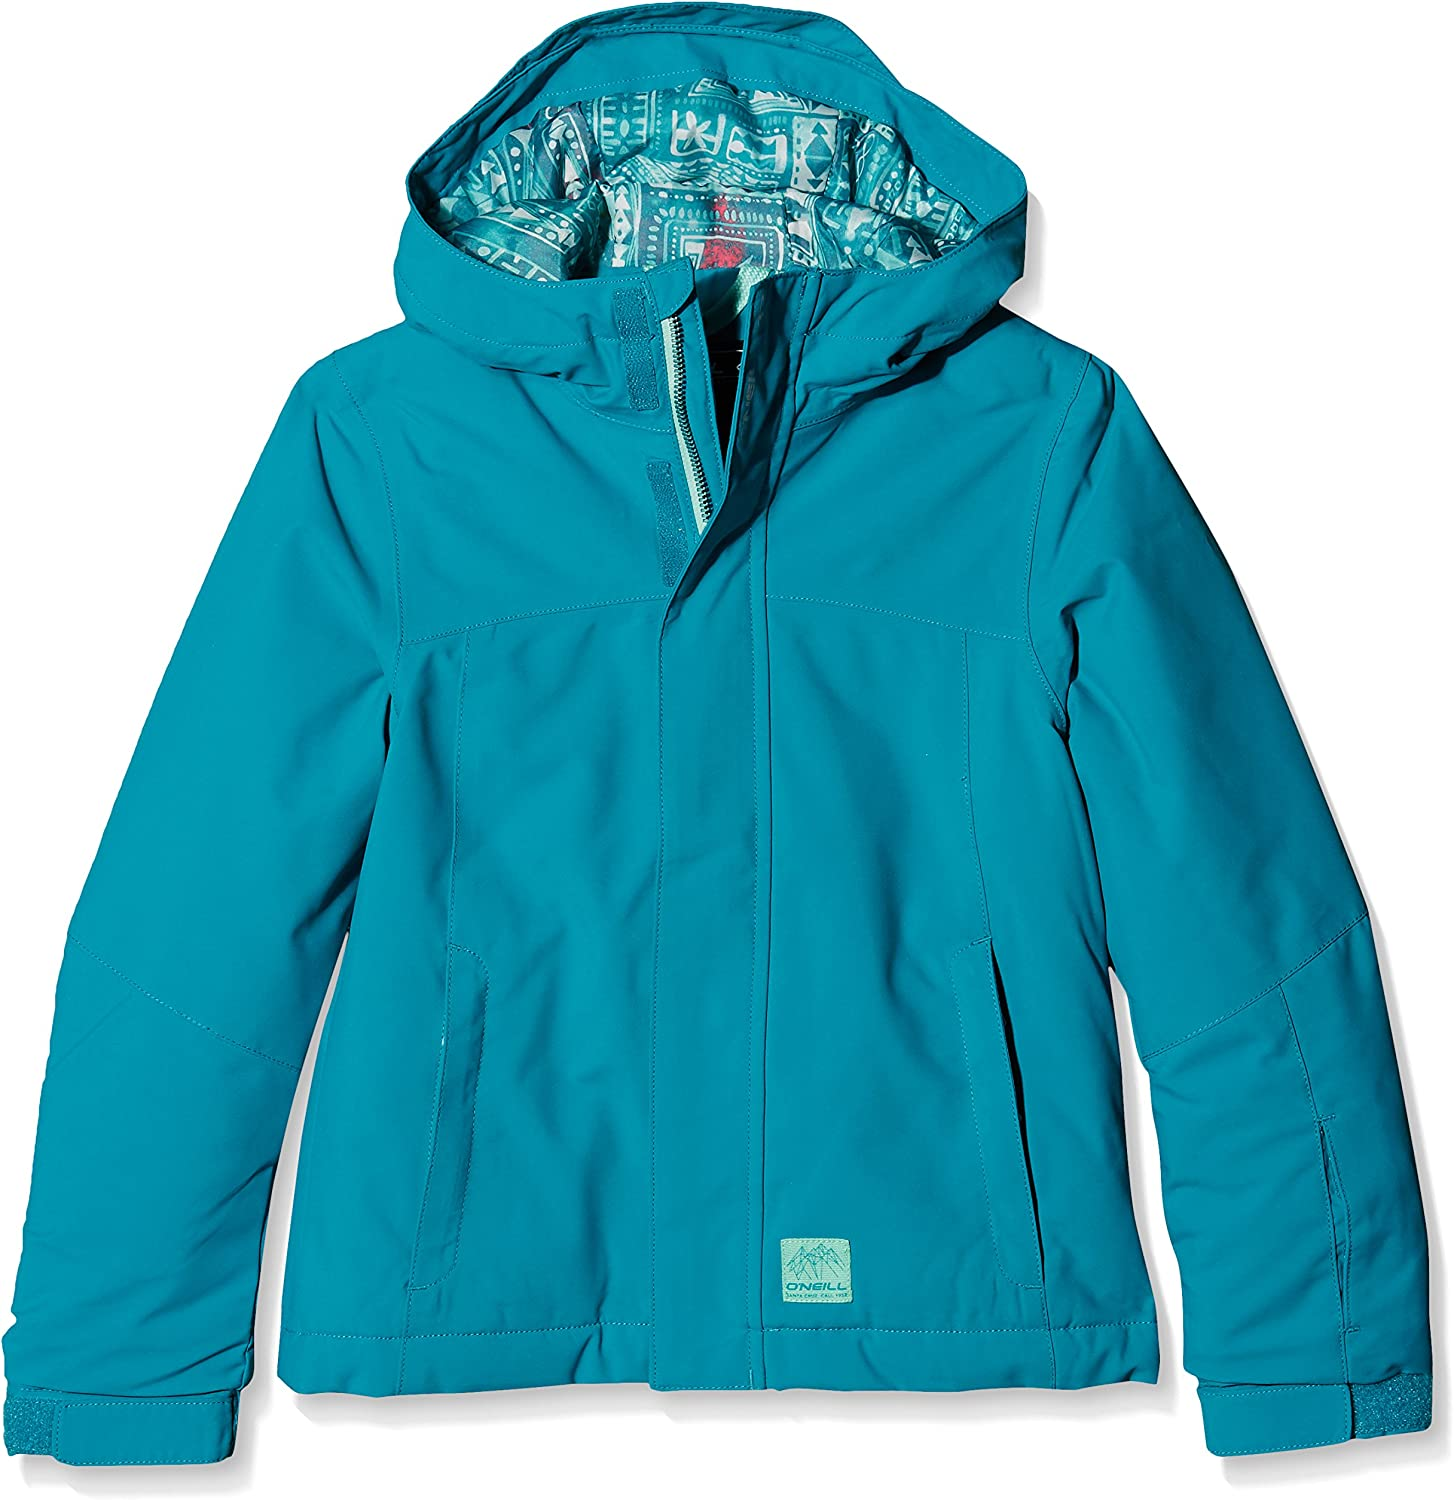 Jewel Jacket ONeill Jewel pour Fille Fille